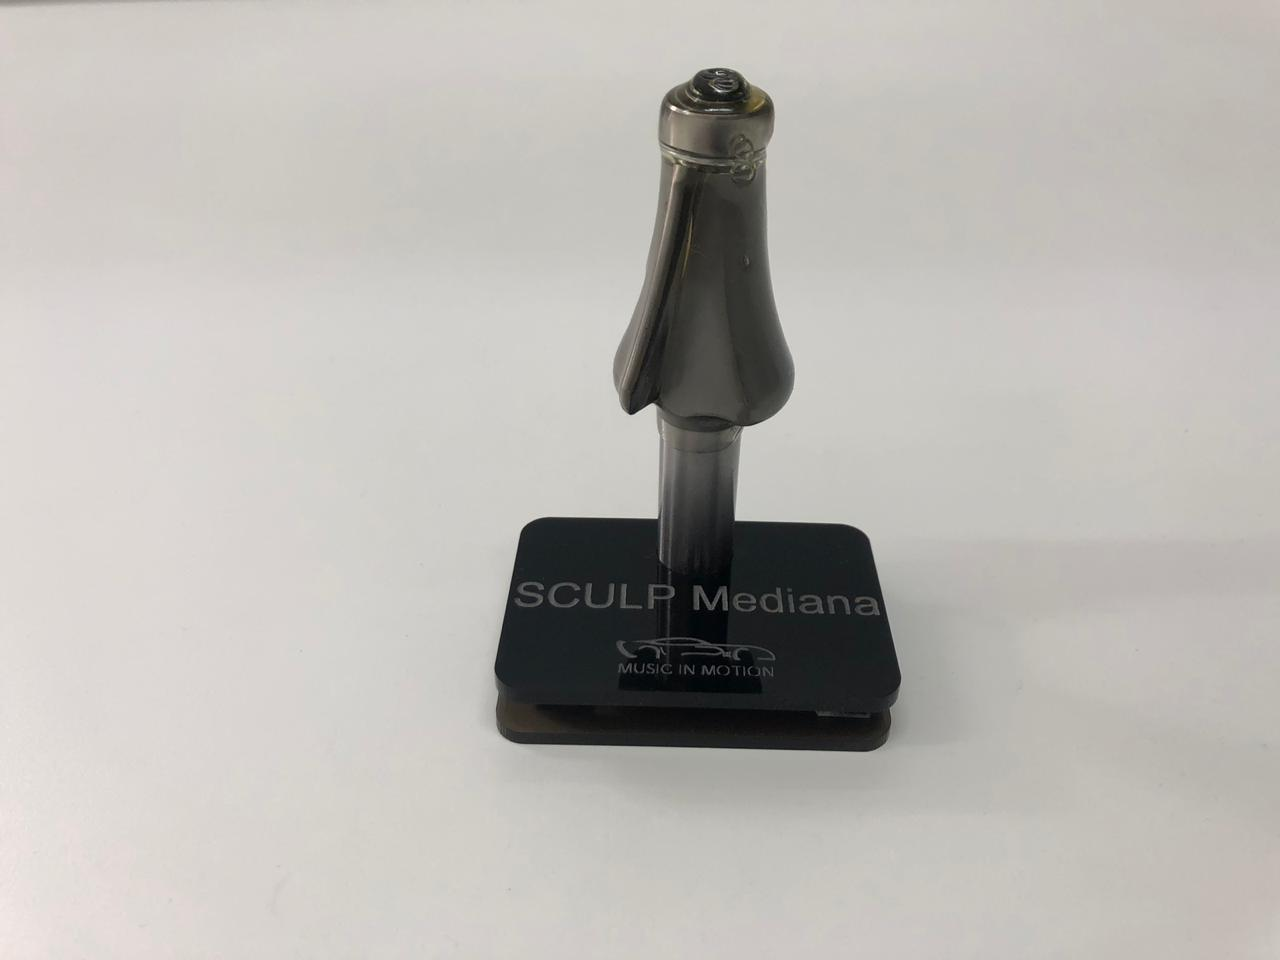 Sculp mediana